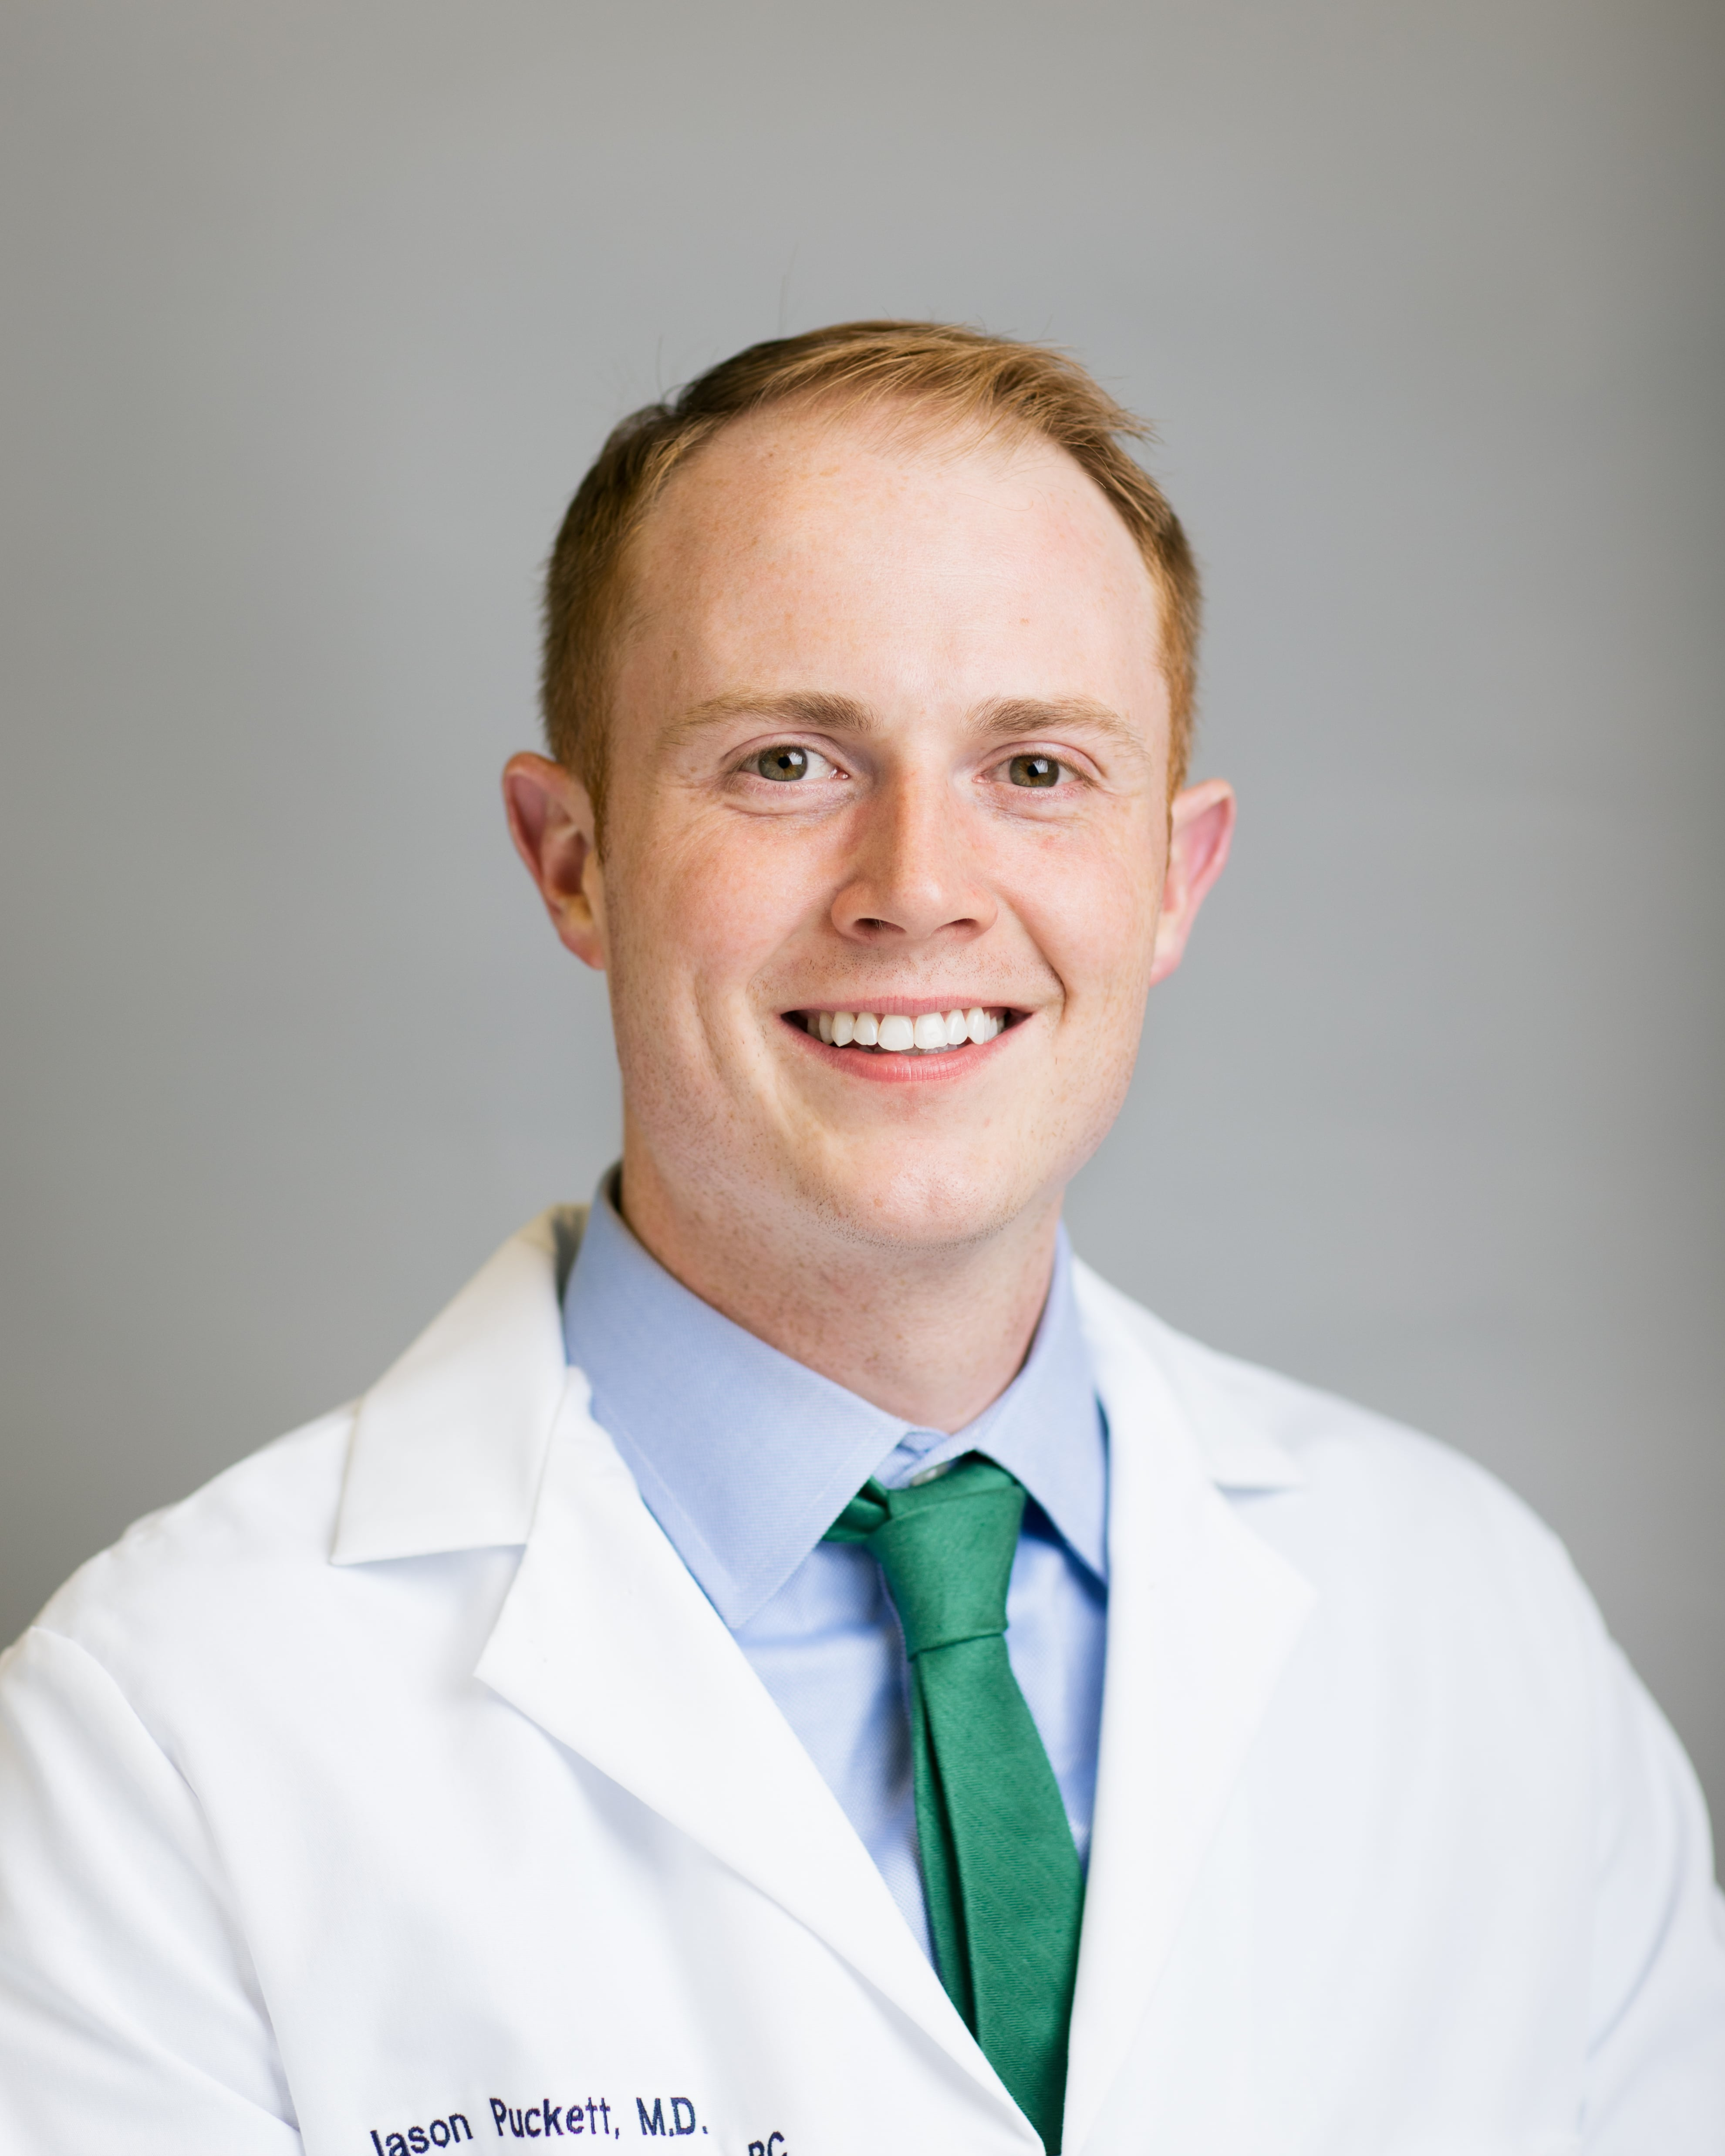 Jason S. Puckett, M.D.